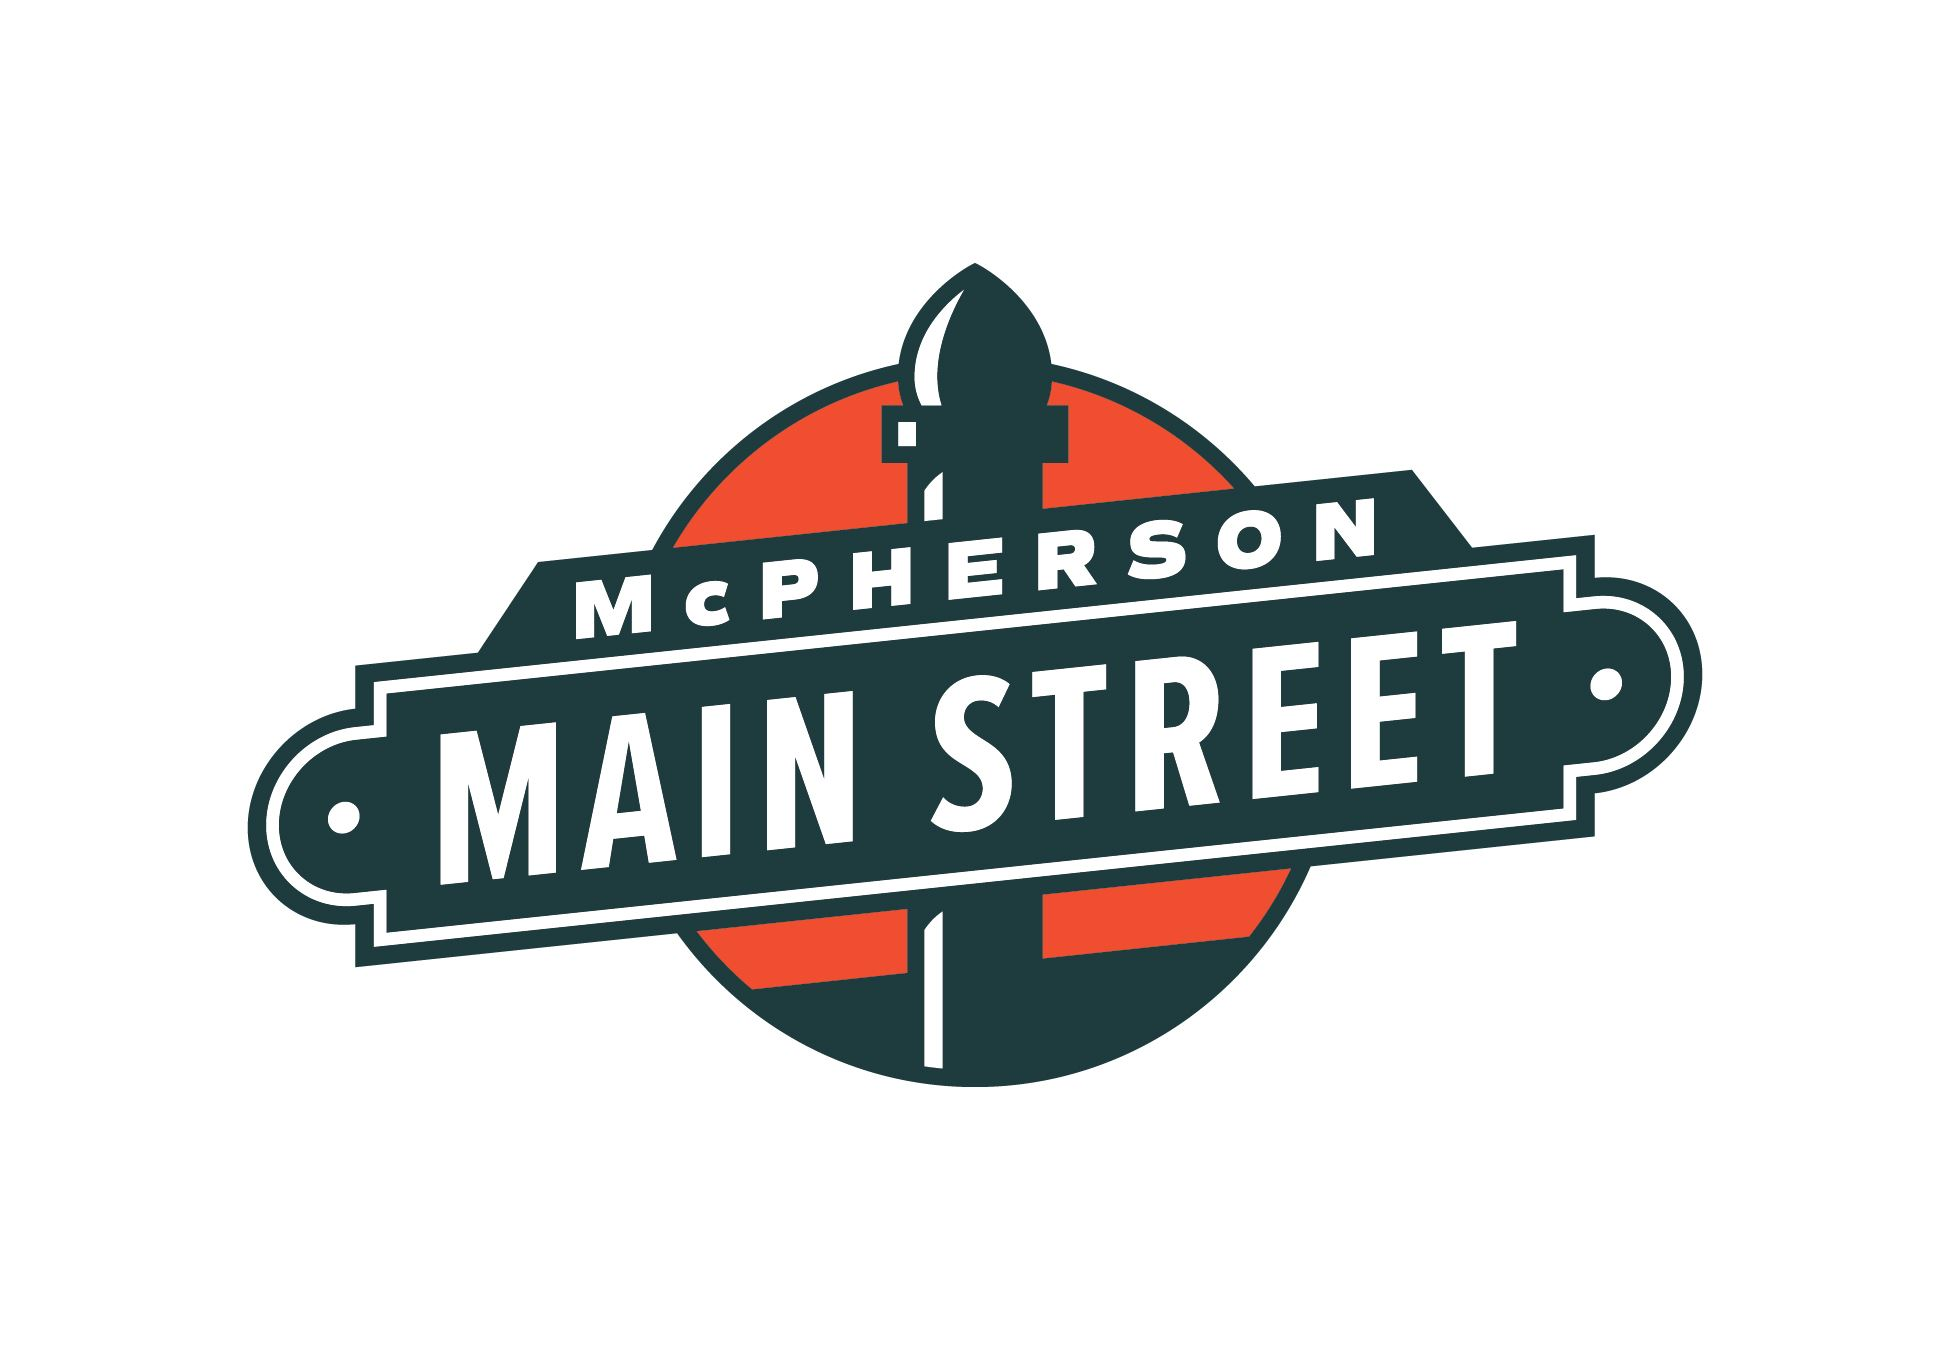 Promotional street sign with the words McPherson Main Street